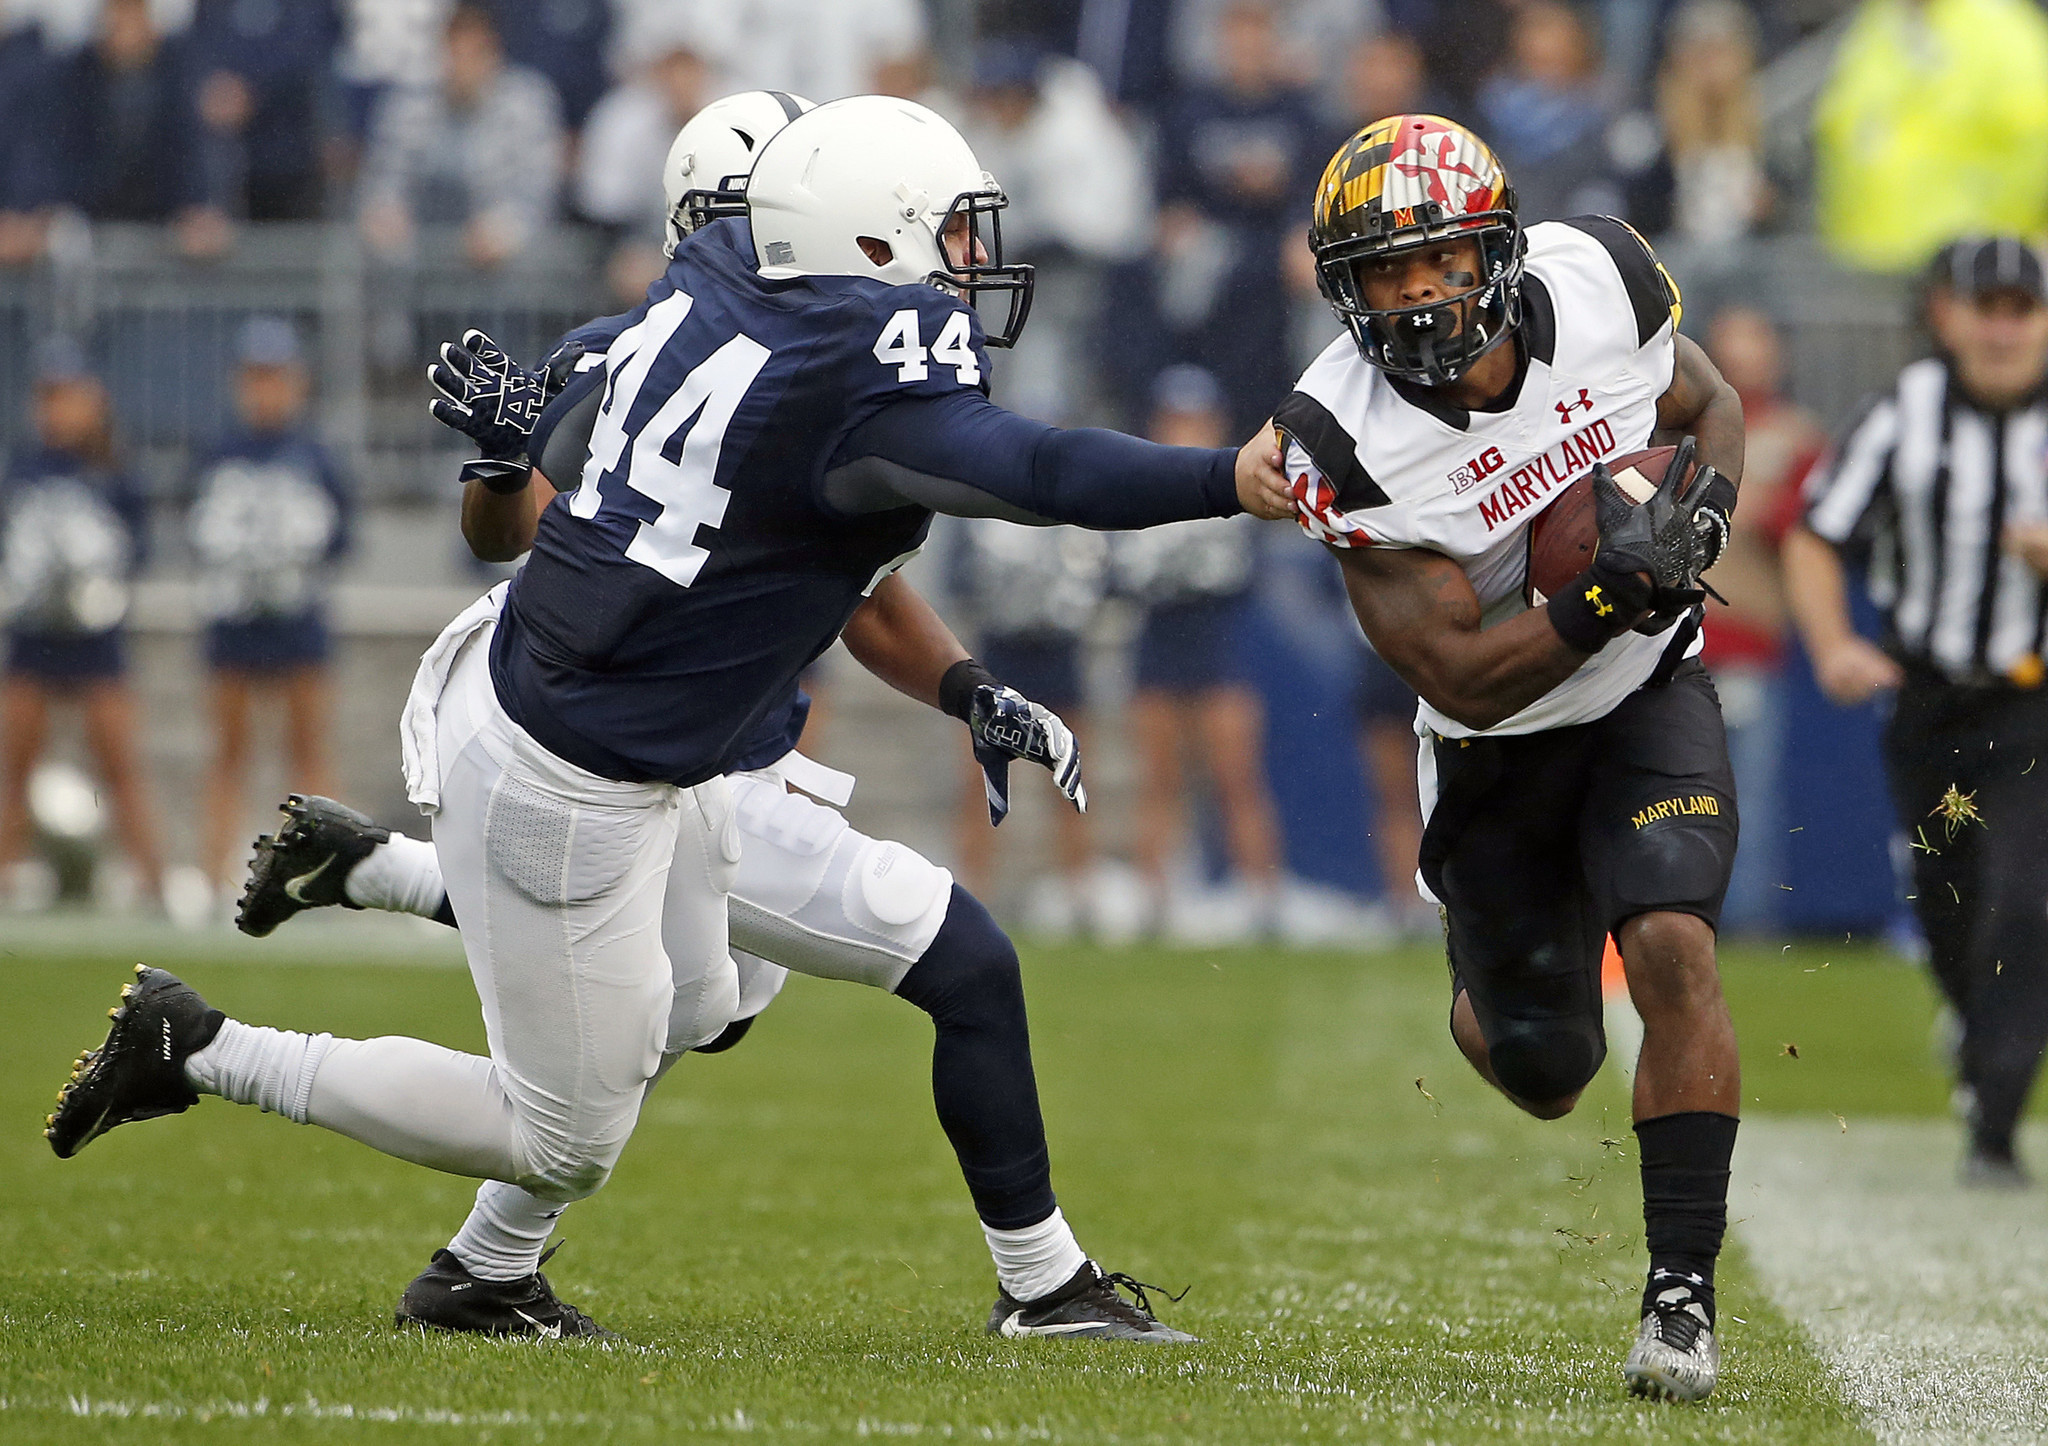 Bal-terps-will-likely-out-for-season-with-torn-acl-perry-hills-game-time-decision-for-michigan-state-20161021